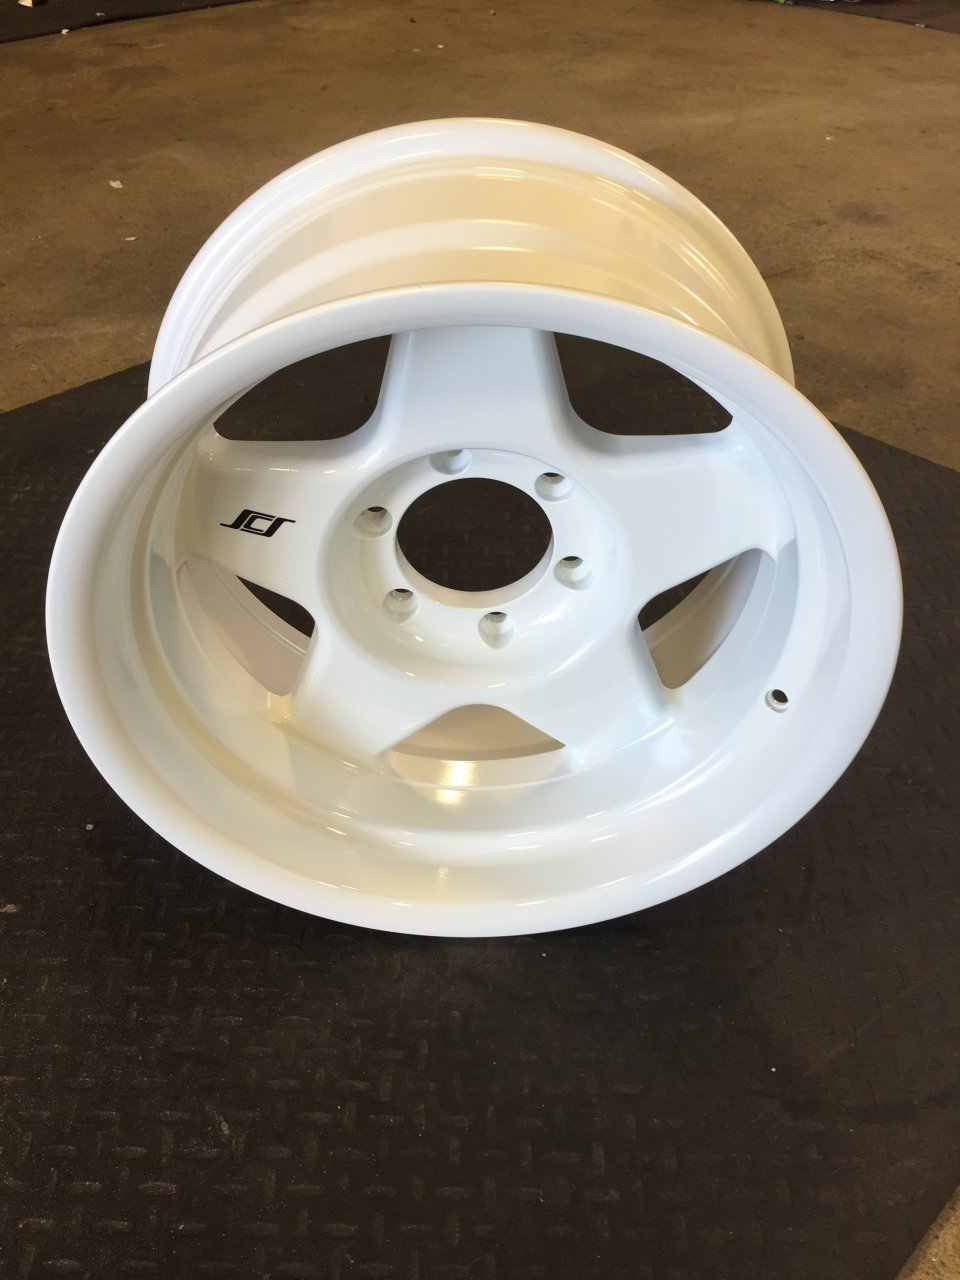 Gauging Interest In Scs F 5 Wheels In New 17x9 Size Page